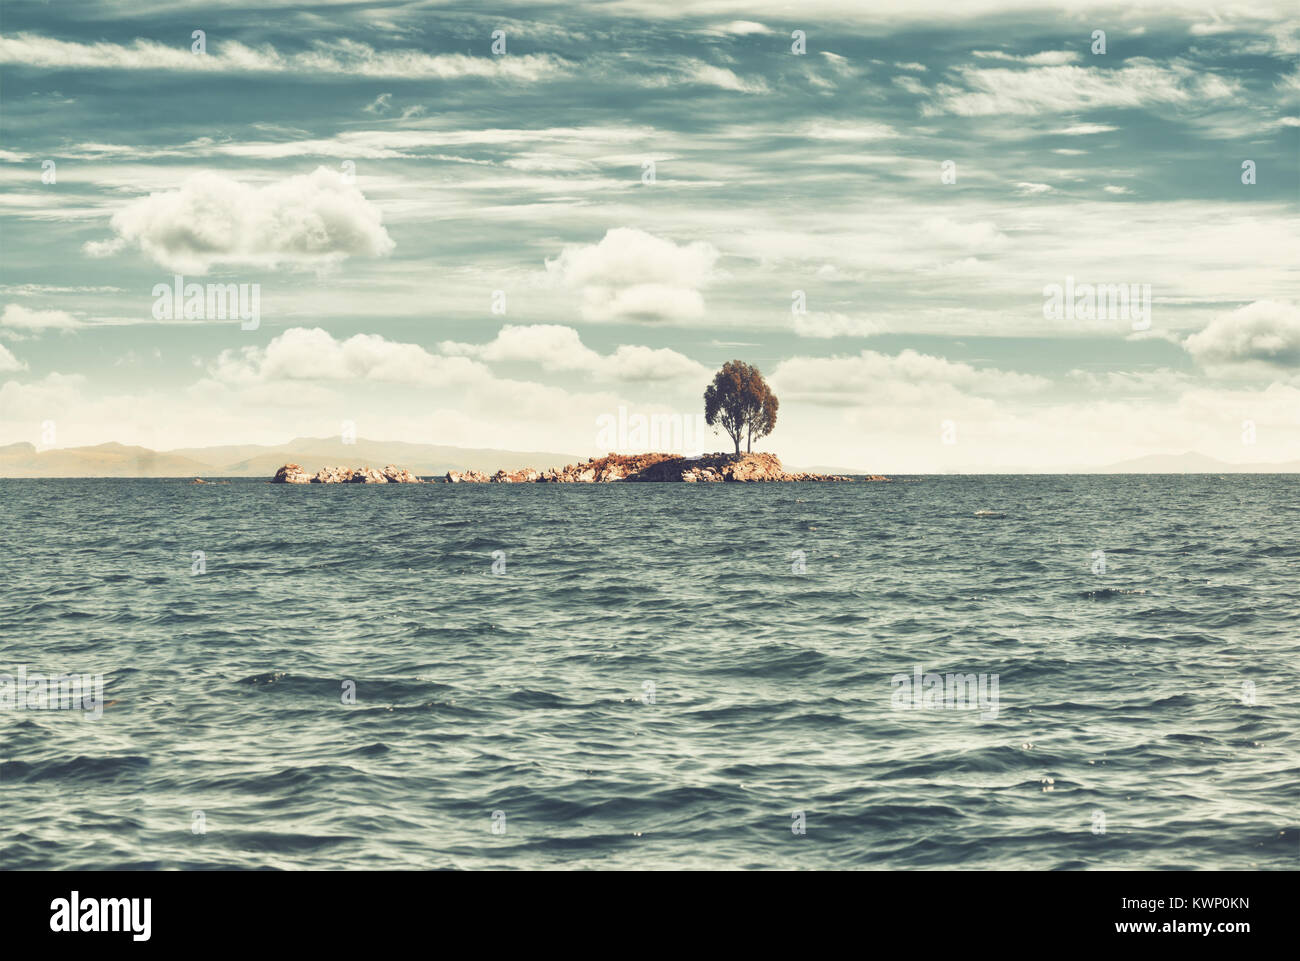 Lonely island on the lake. View of the Titicaca Lake on the border of Peru and Bolivia. Vintage filter applied. - Stock Image